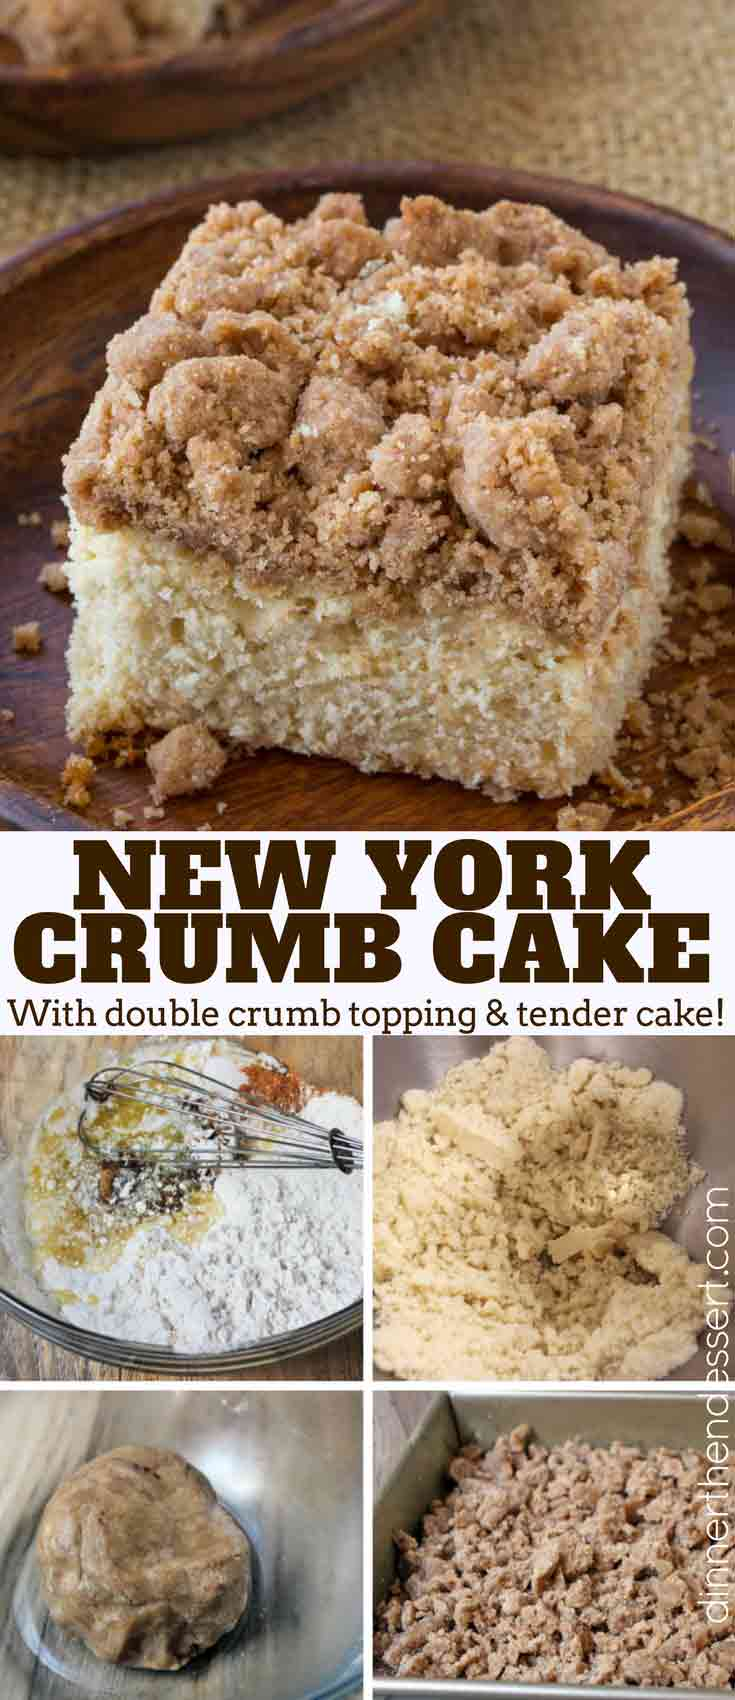 New York Crumb Cake Collage